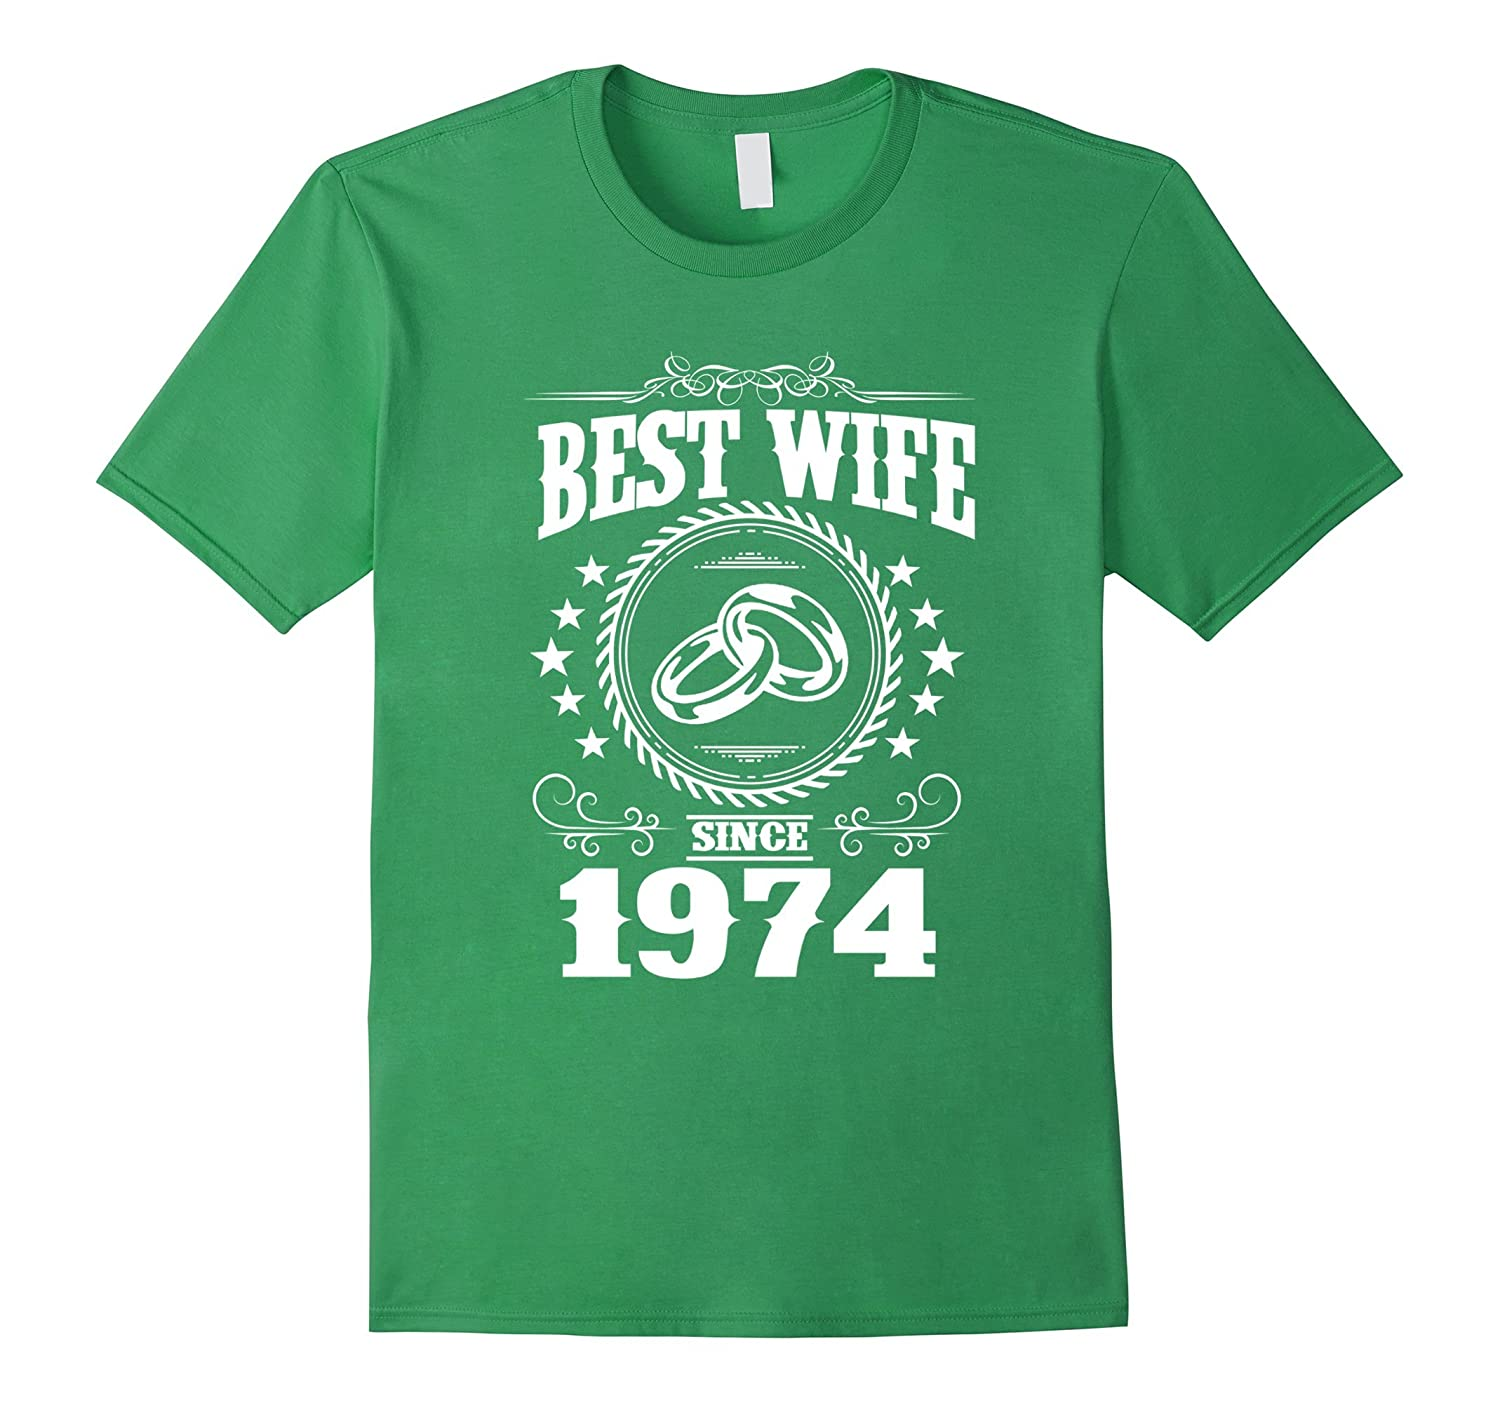 43rd Wedding Anniversary Gifts: 43rd Wedding Anniversary T-Shirts For Wife From Husband-PL